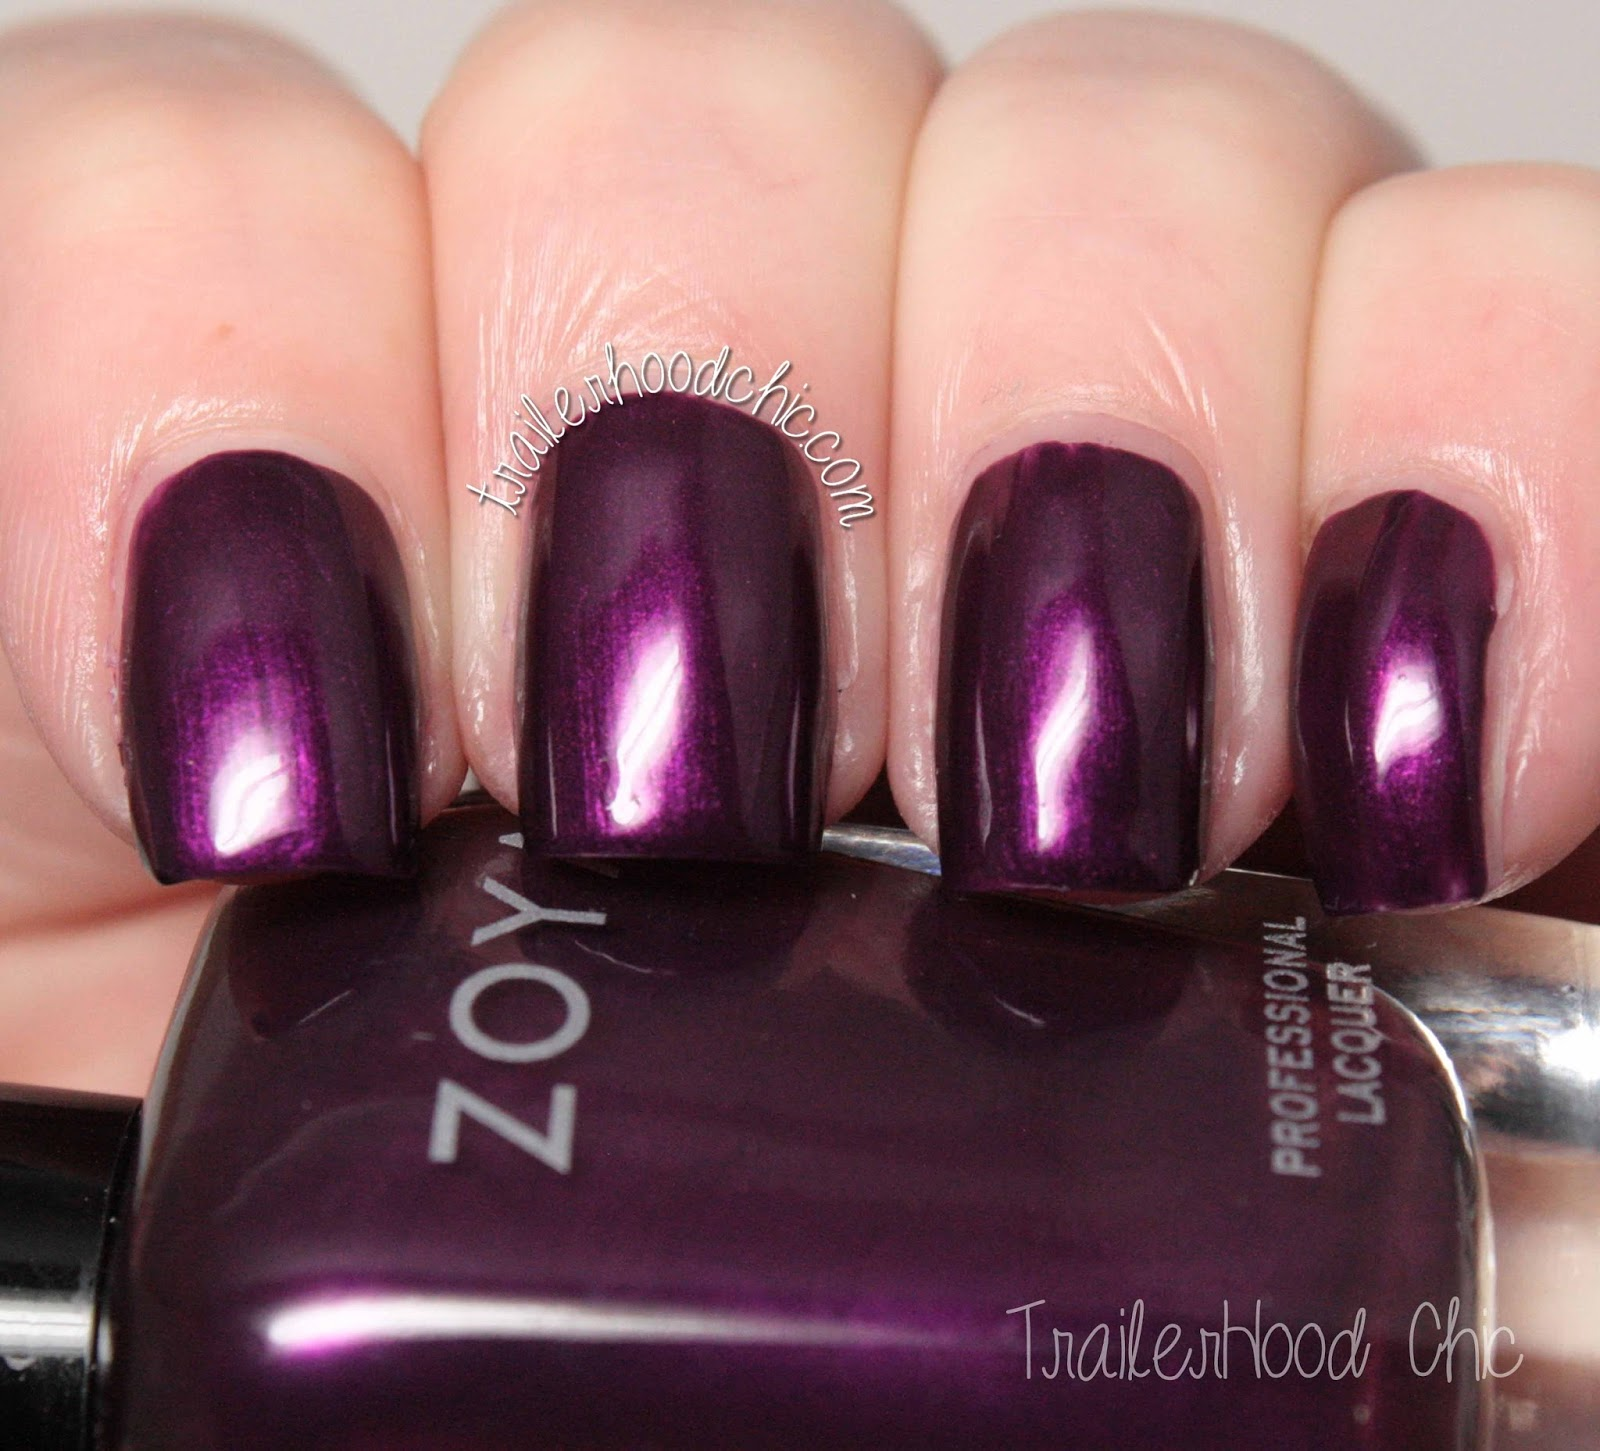 zoya wishes swatches haven